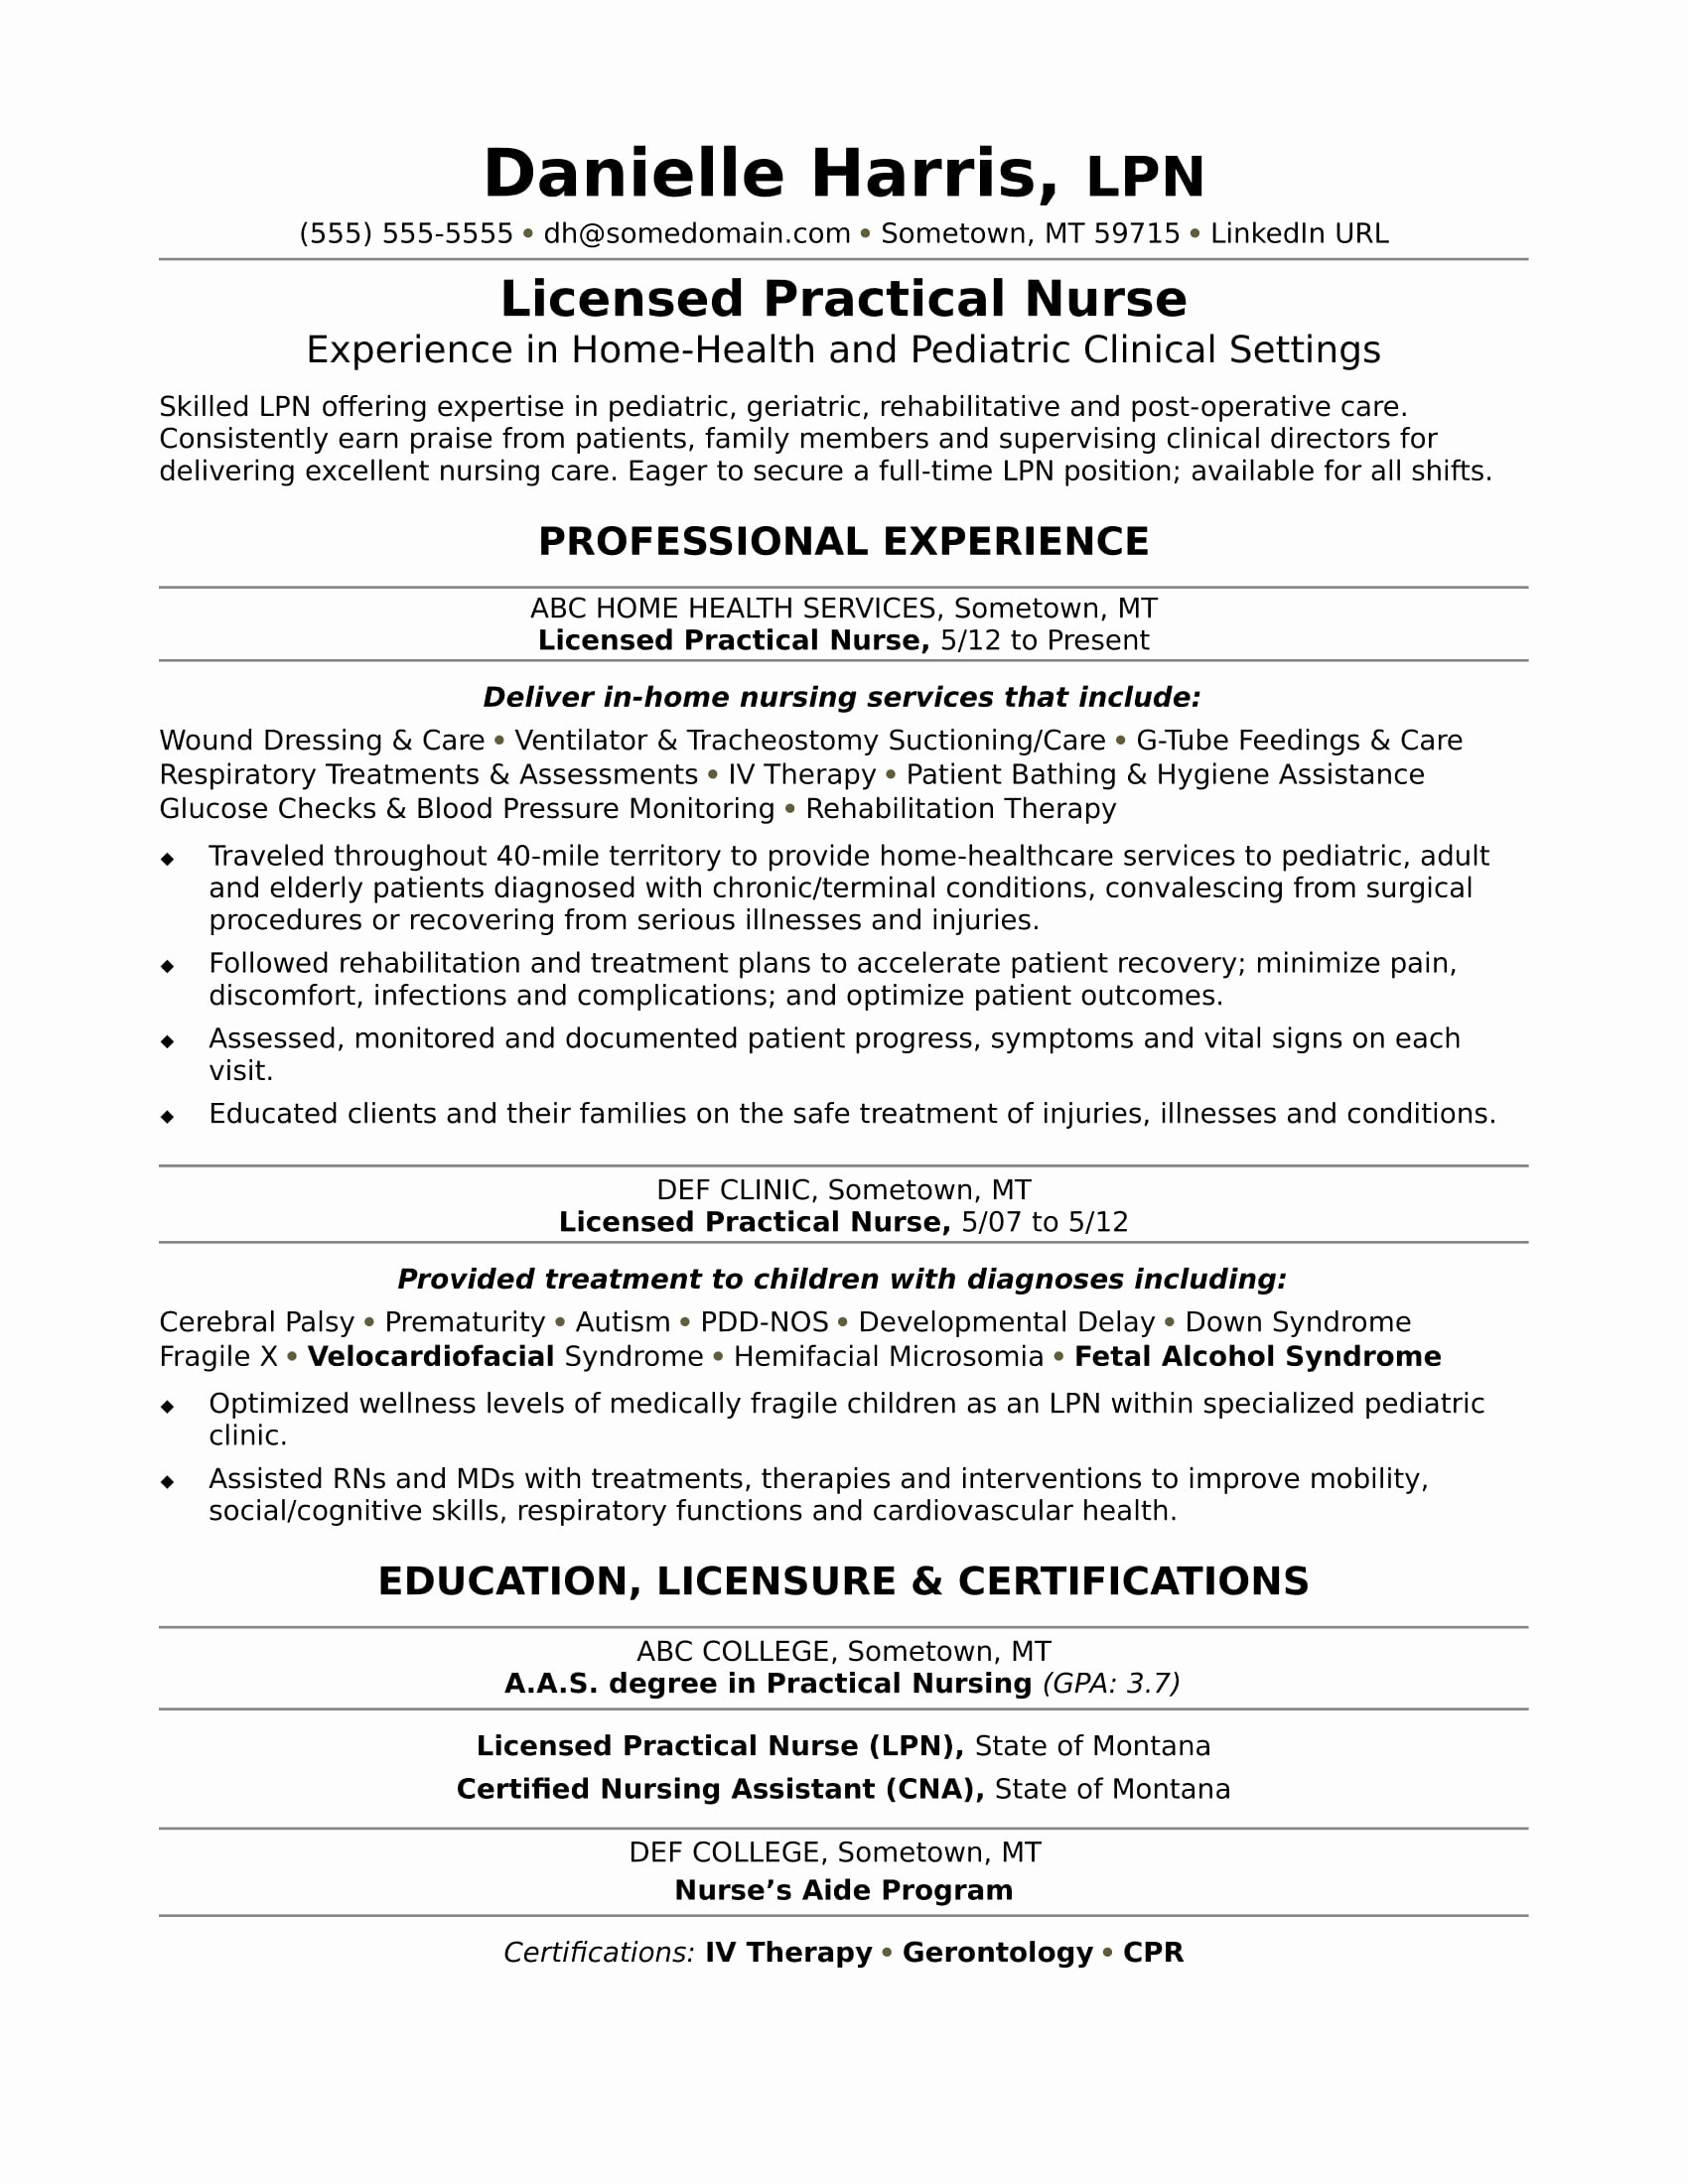 New Grad Nursing Resume Template - Free Cv Samples format and Templates Page 332 Of 353